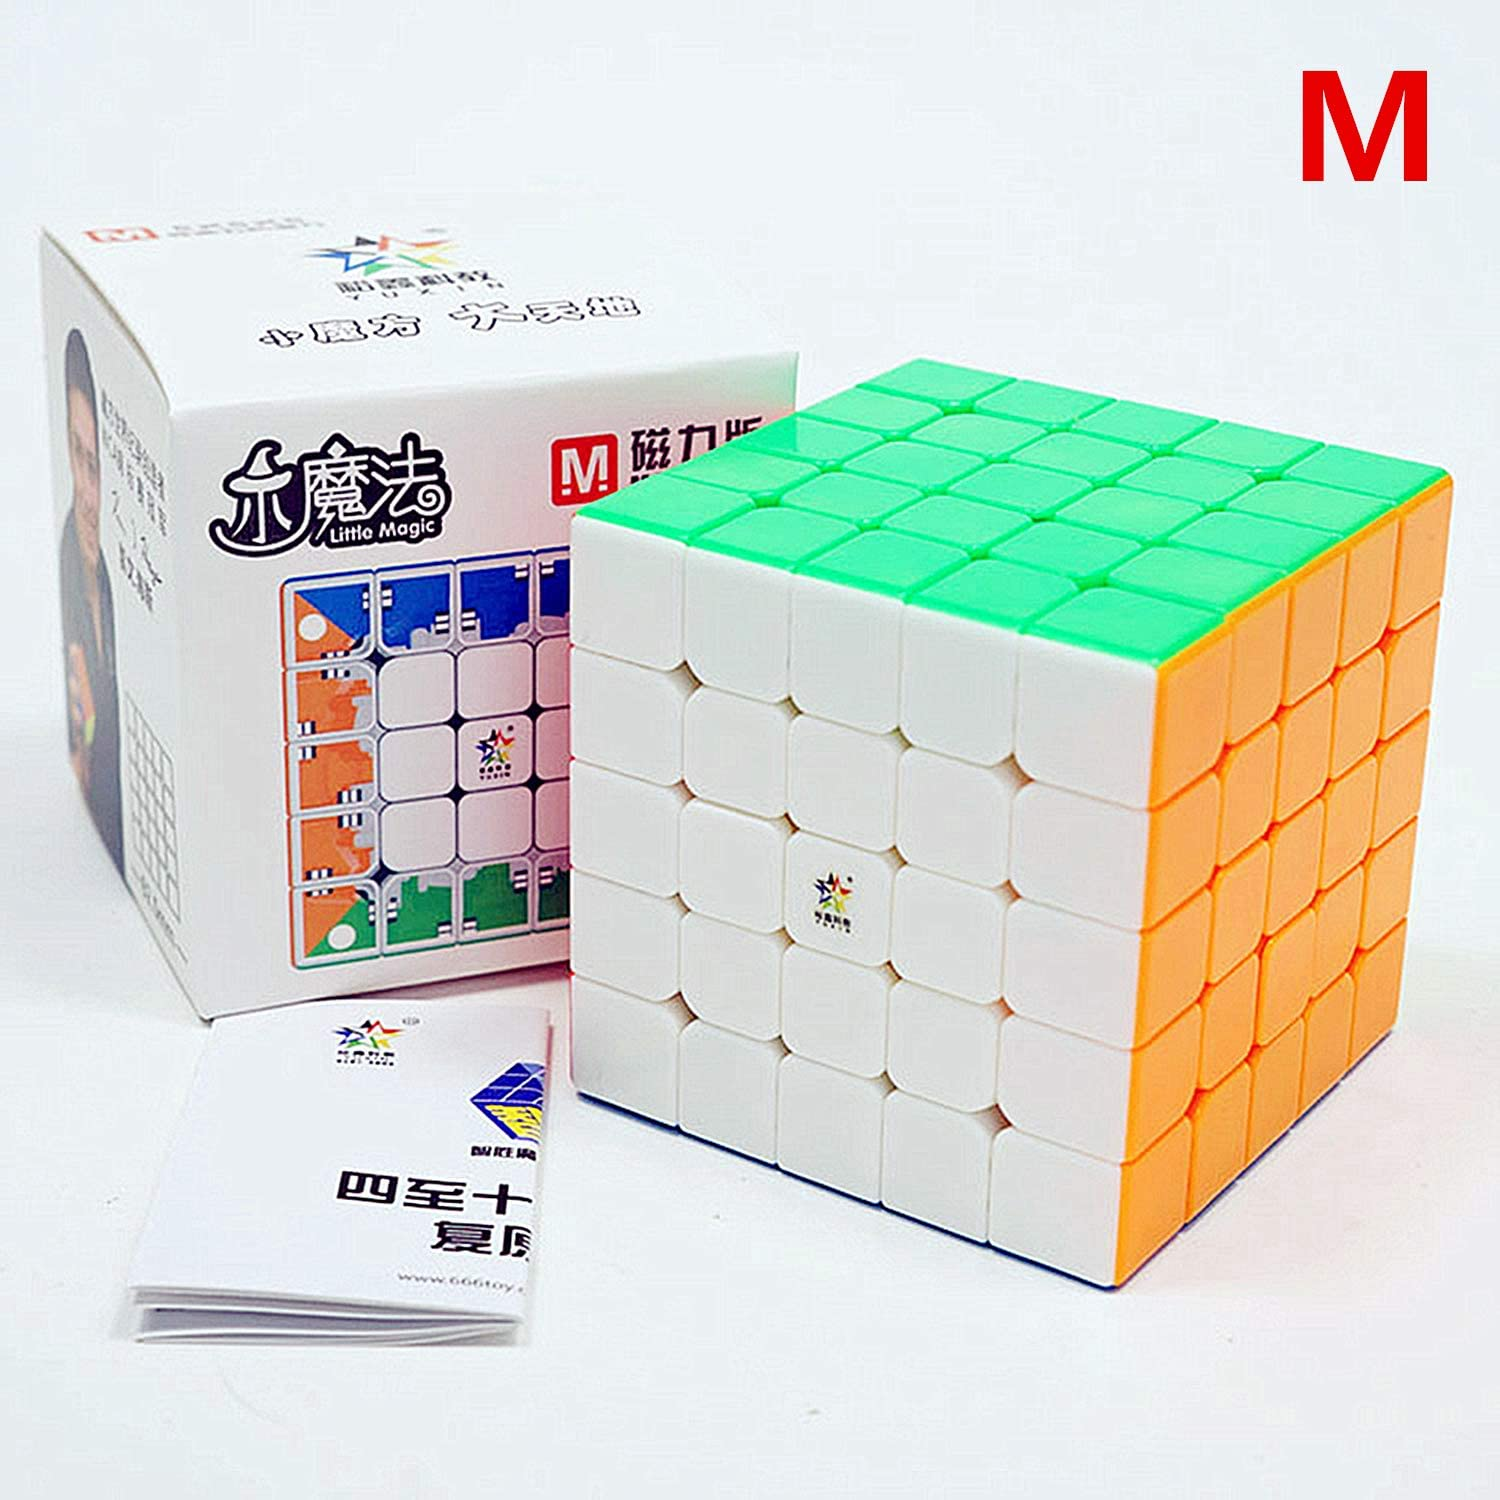 LiangCuber YuXin Little Magic 5x5 M Stickerless Speed Cube Yuxin Zhisheng Little Magic 5x5x5 Magnetic Cube Puzzle